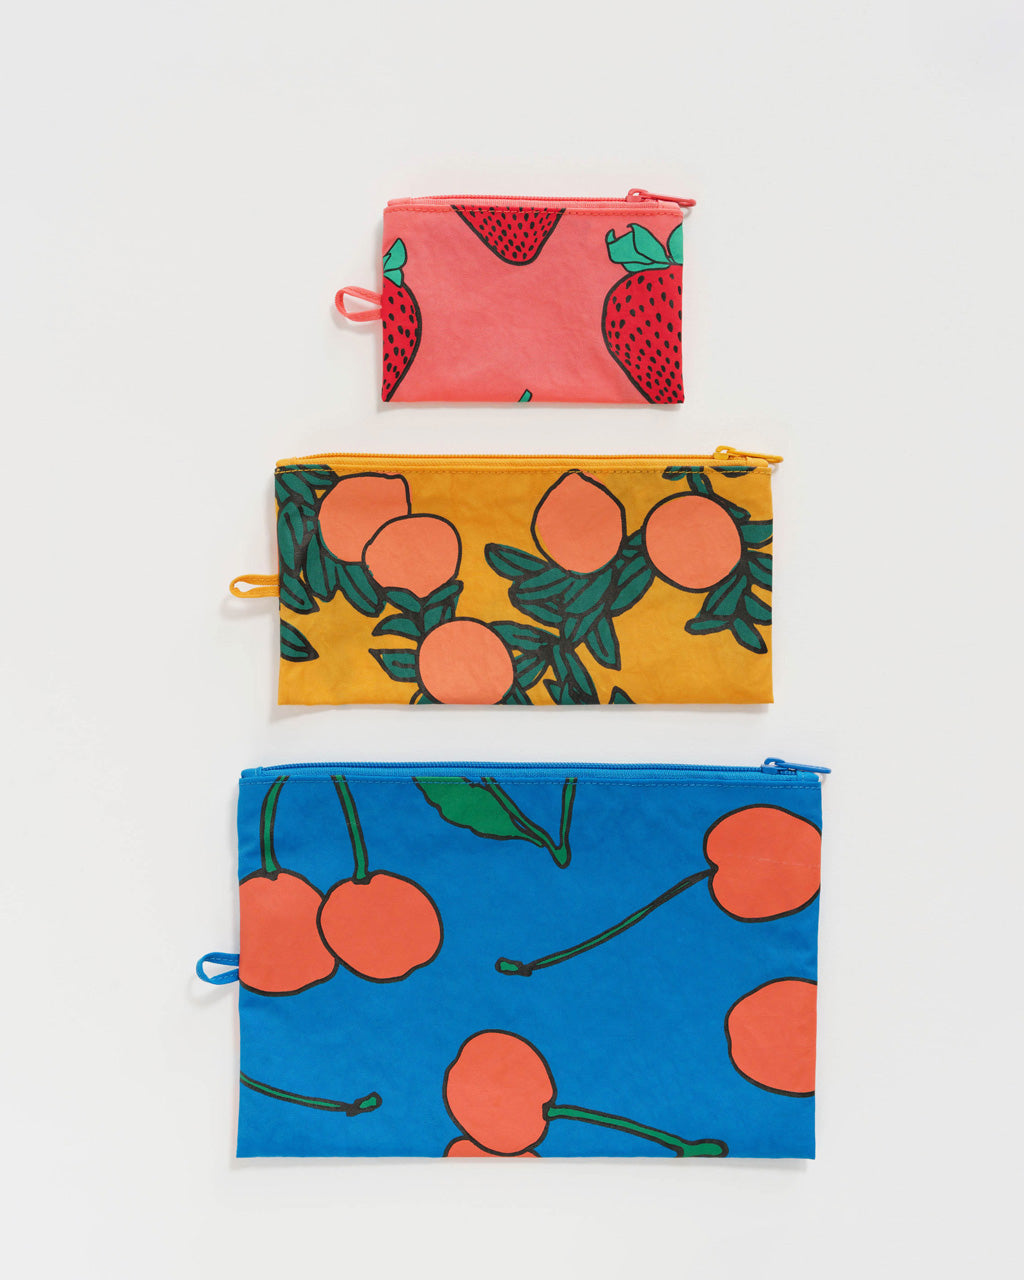 set of 3 nylon pouches in assorted sizes in 3 different patterns: blue with red cherries, marigold with orange tree print, pink with red strawberries